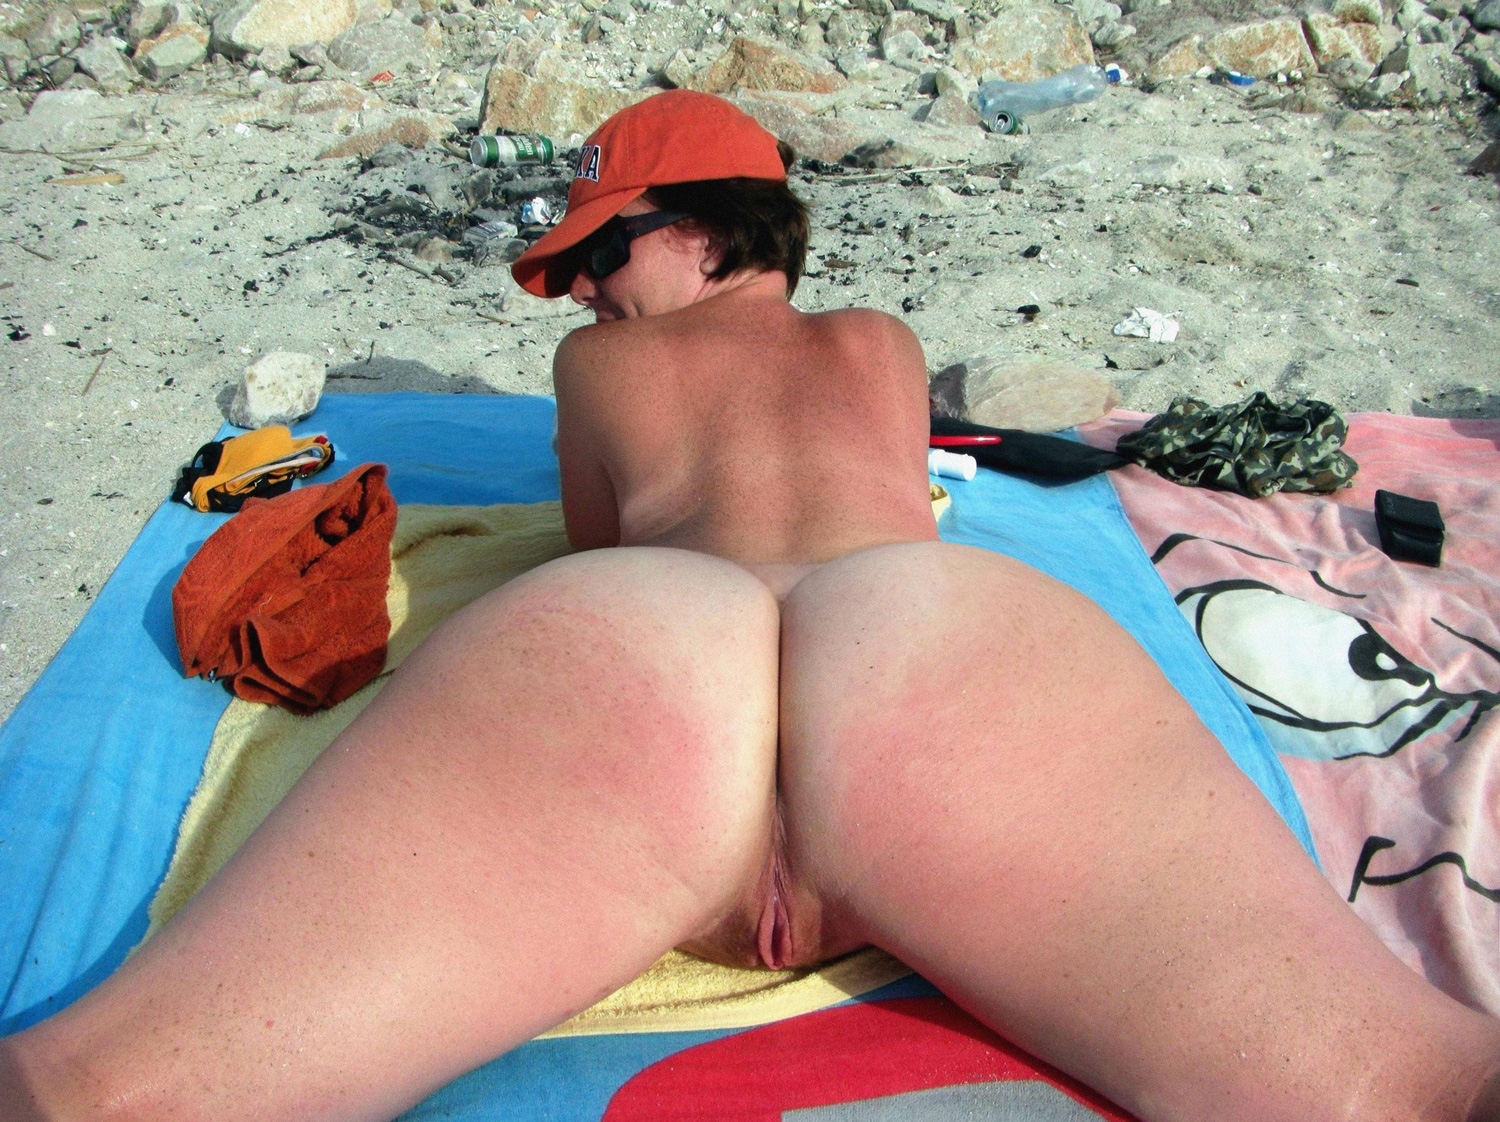 Best Beach Porn Videos